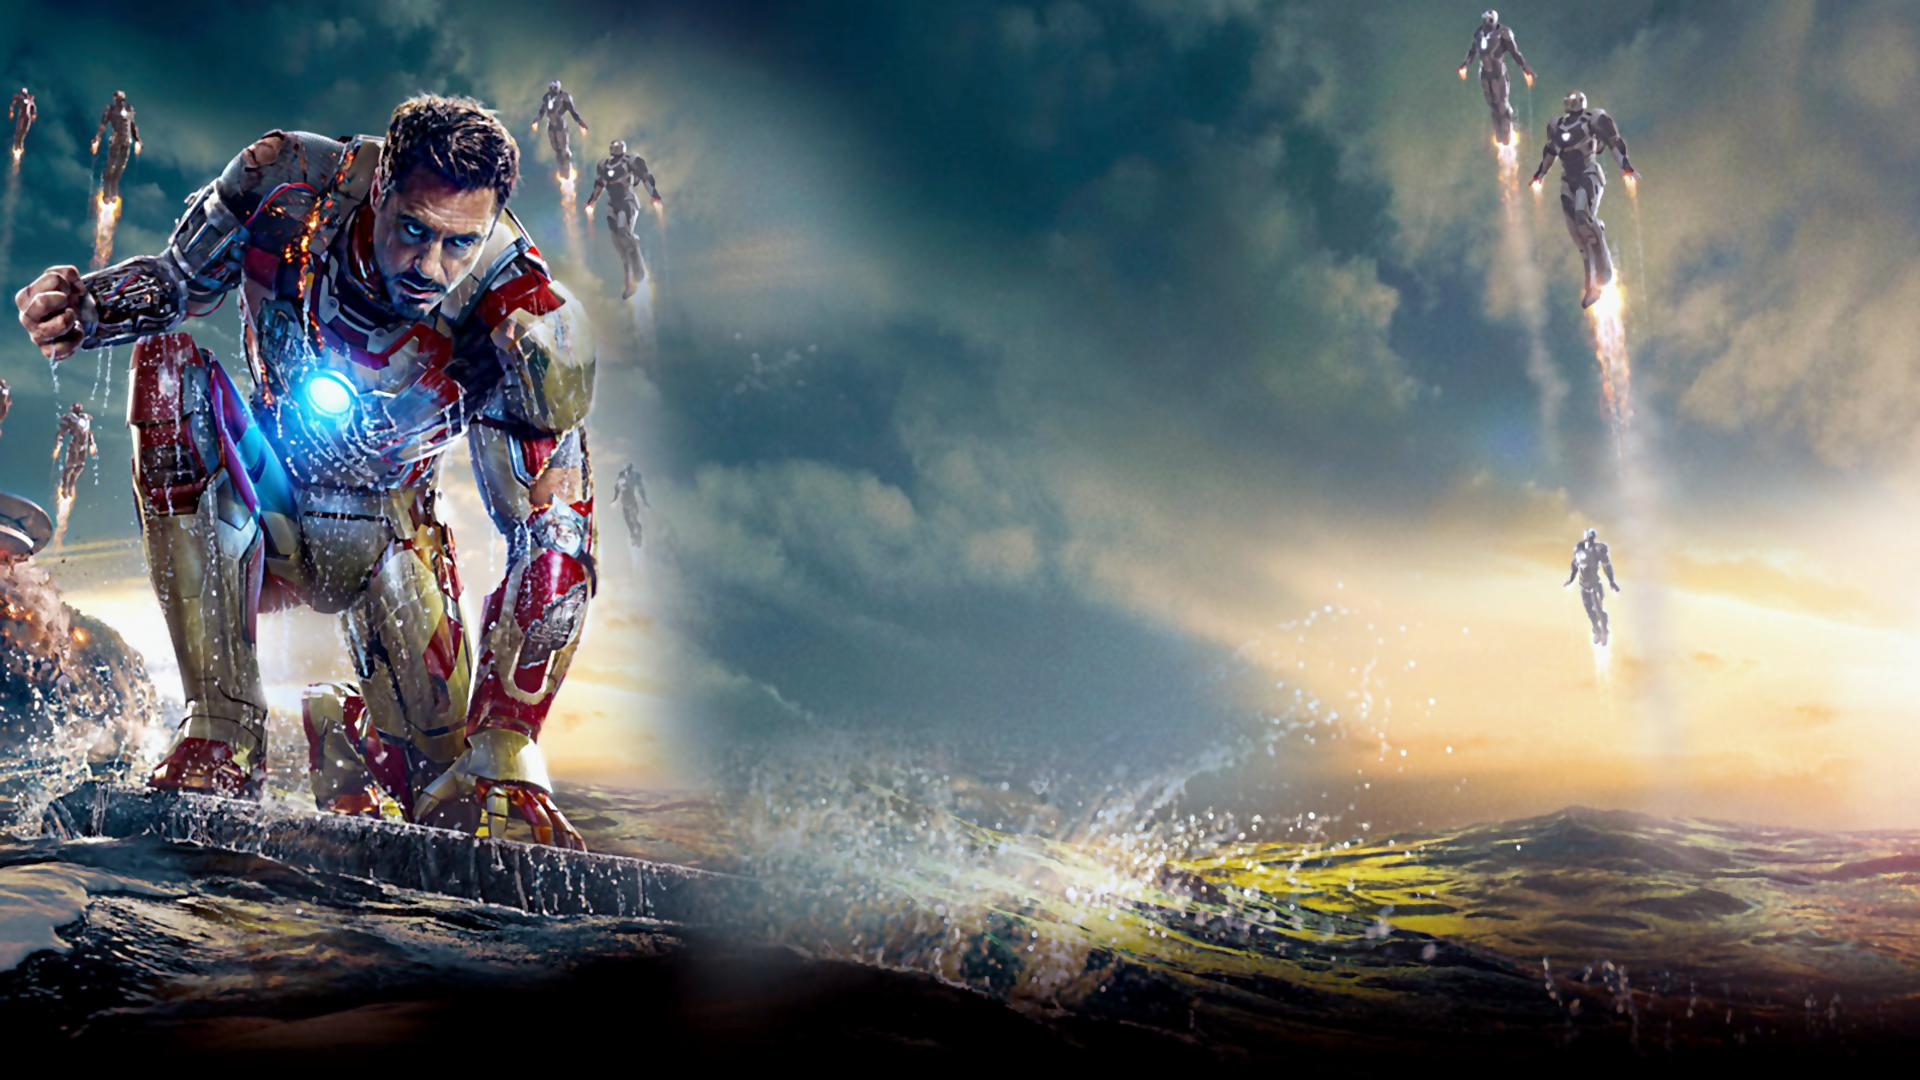 1280x720 iron man hd 720p hd 4k wallpapers, images, backgrounds